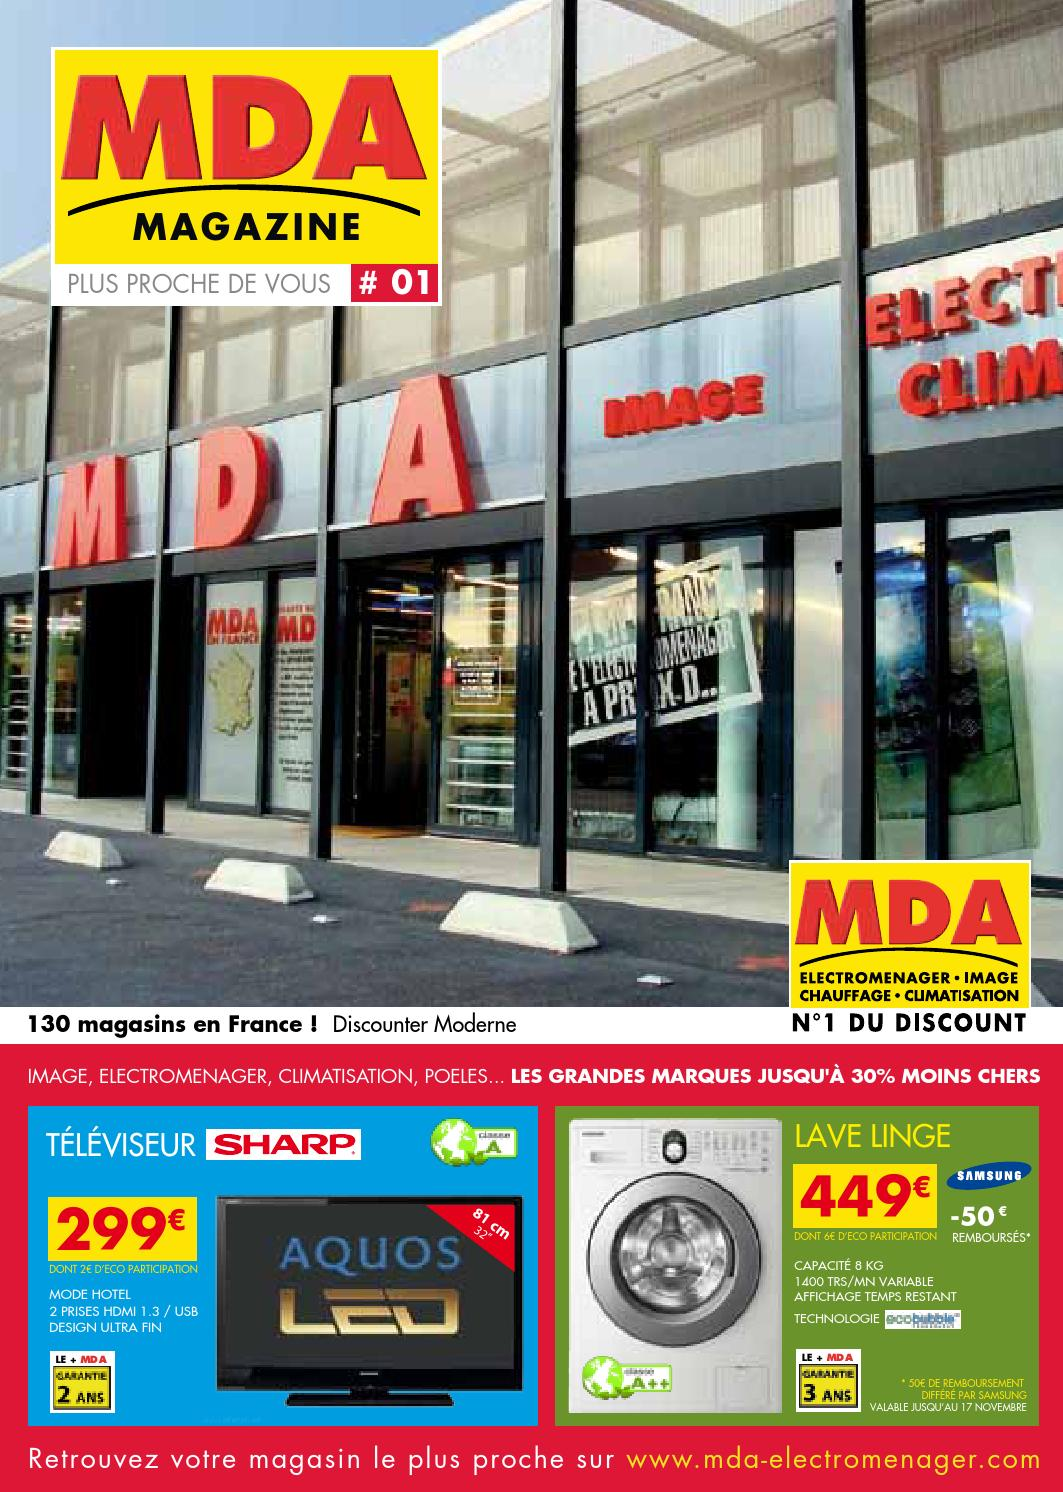 mda magazine # 01mog design - issuu